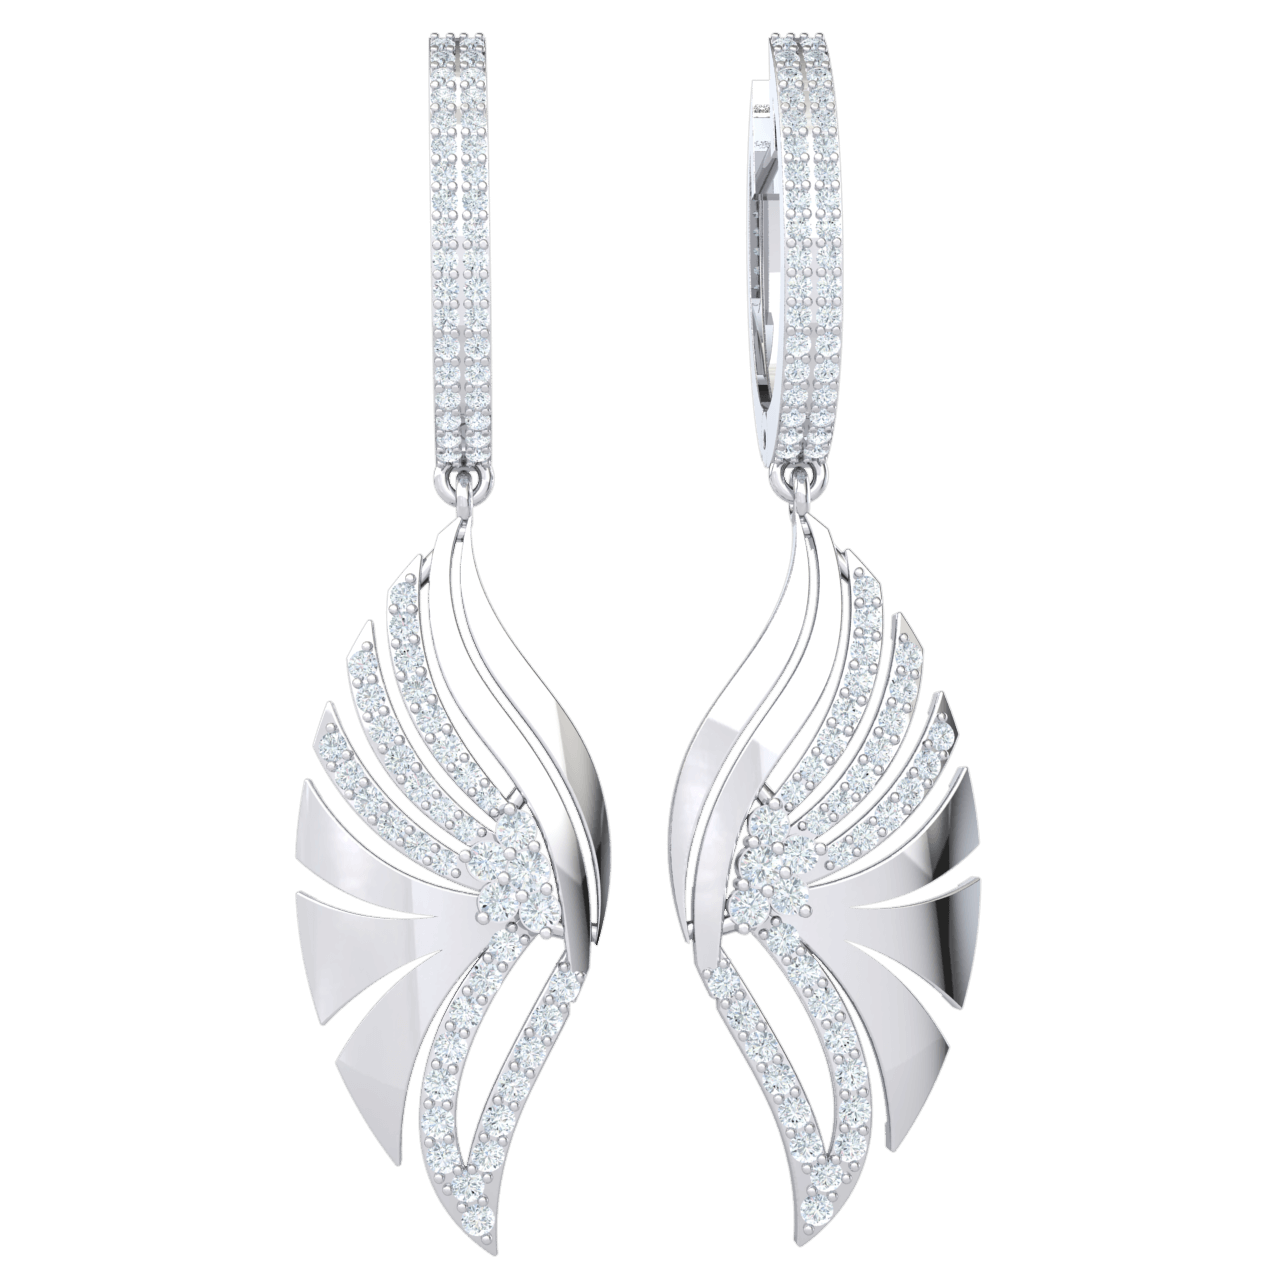 1.15 Ctw Absolutely Exquisite Real Fan Dangle Earrings Covered In Sparkling White Diamonds in GH I1-I2 10 kt Gold